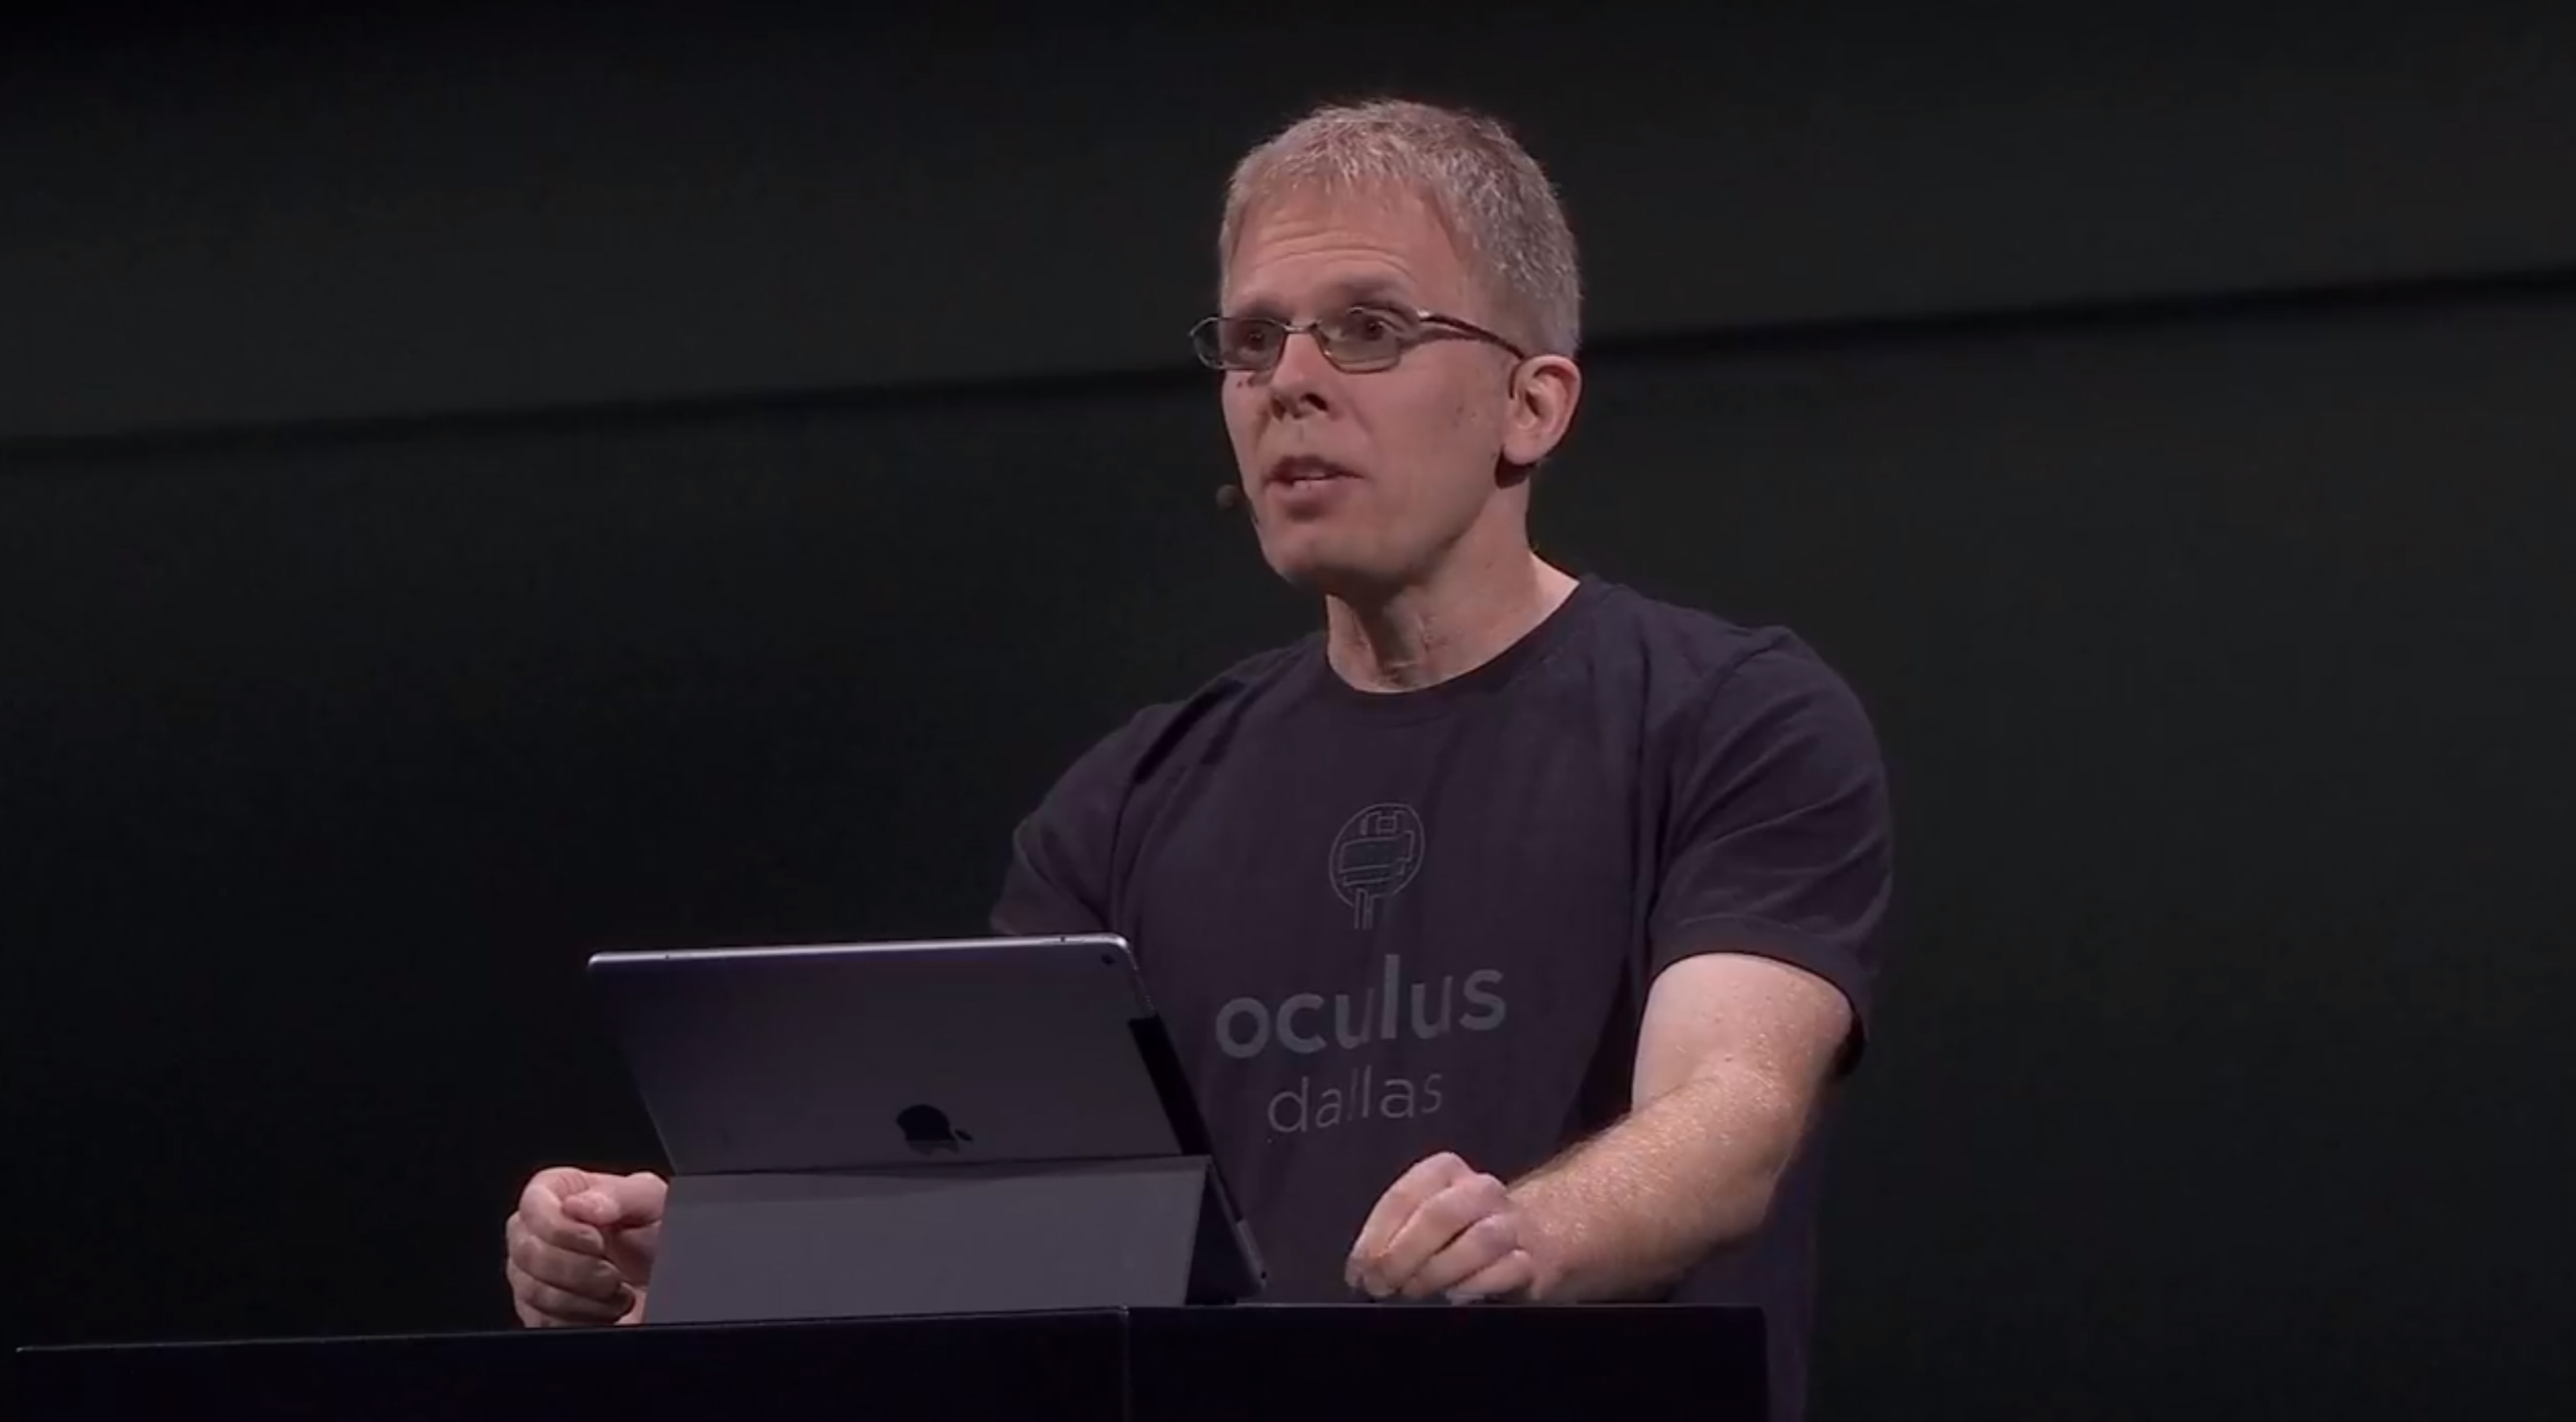 Oculus CTO Carmack plans microSD and low-power support for Go, more